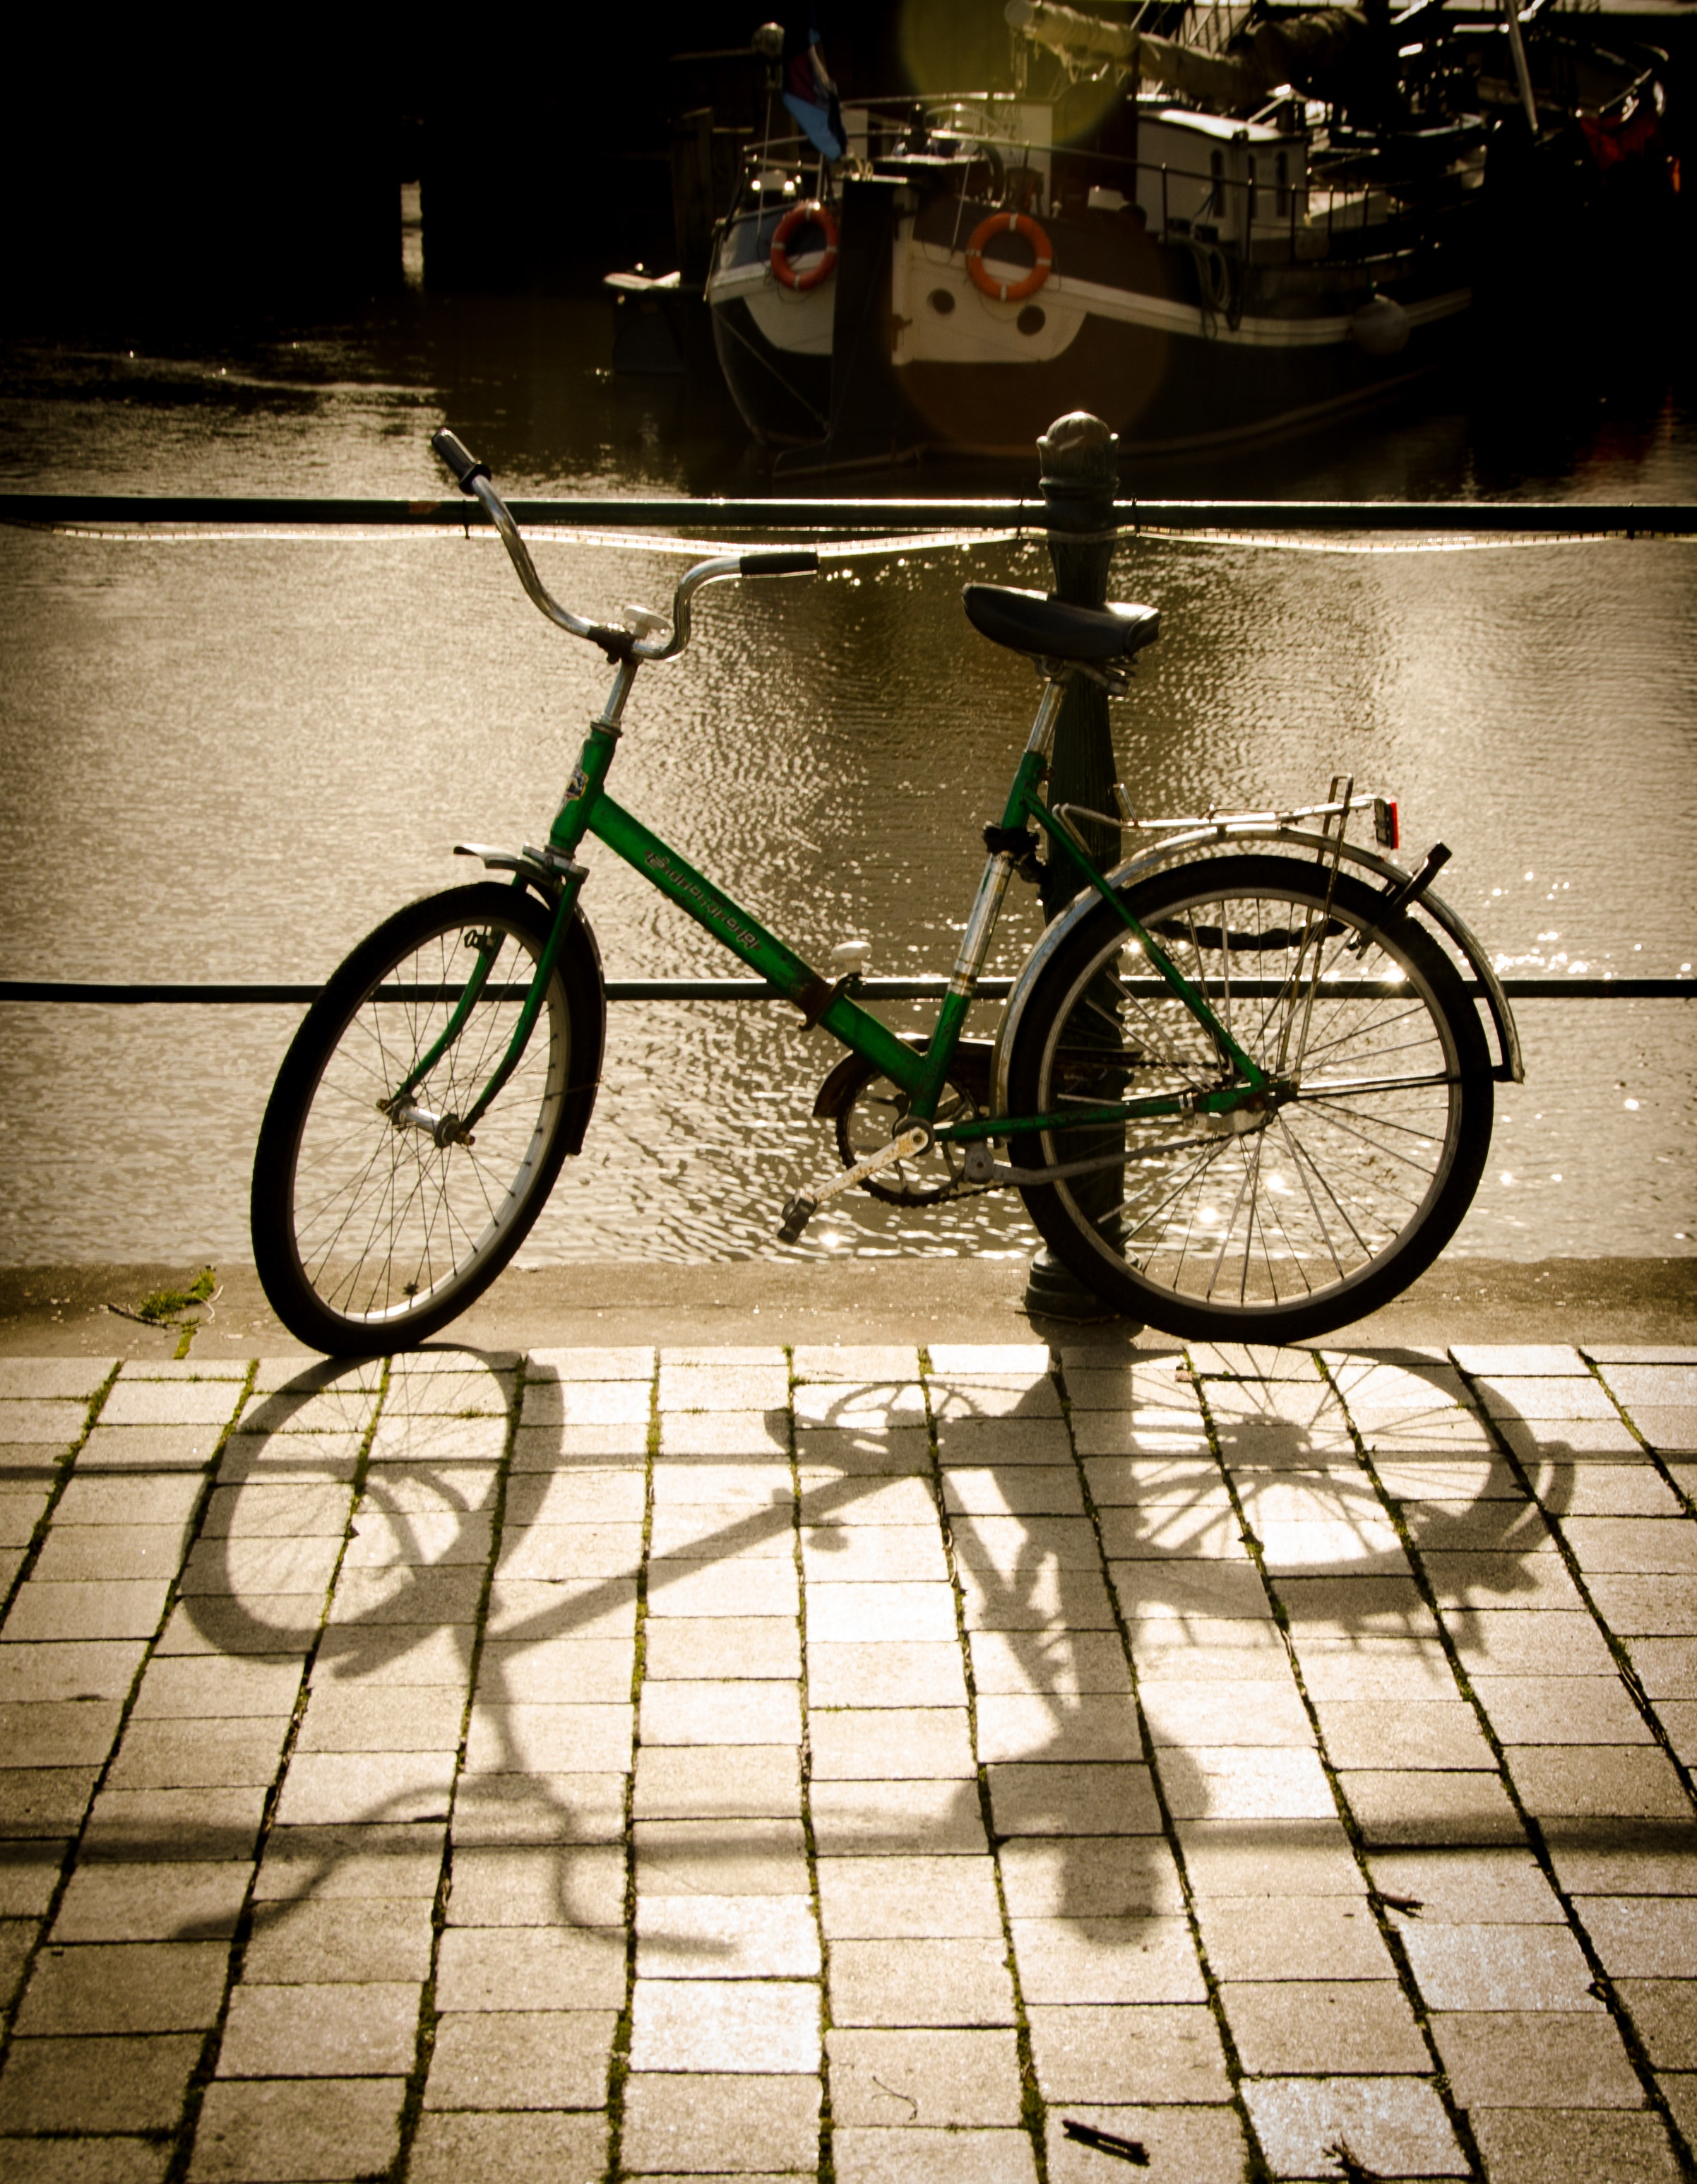 Green bike parked beside the body of water photo